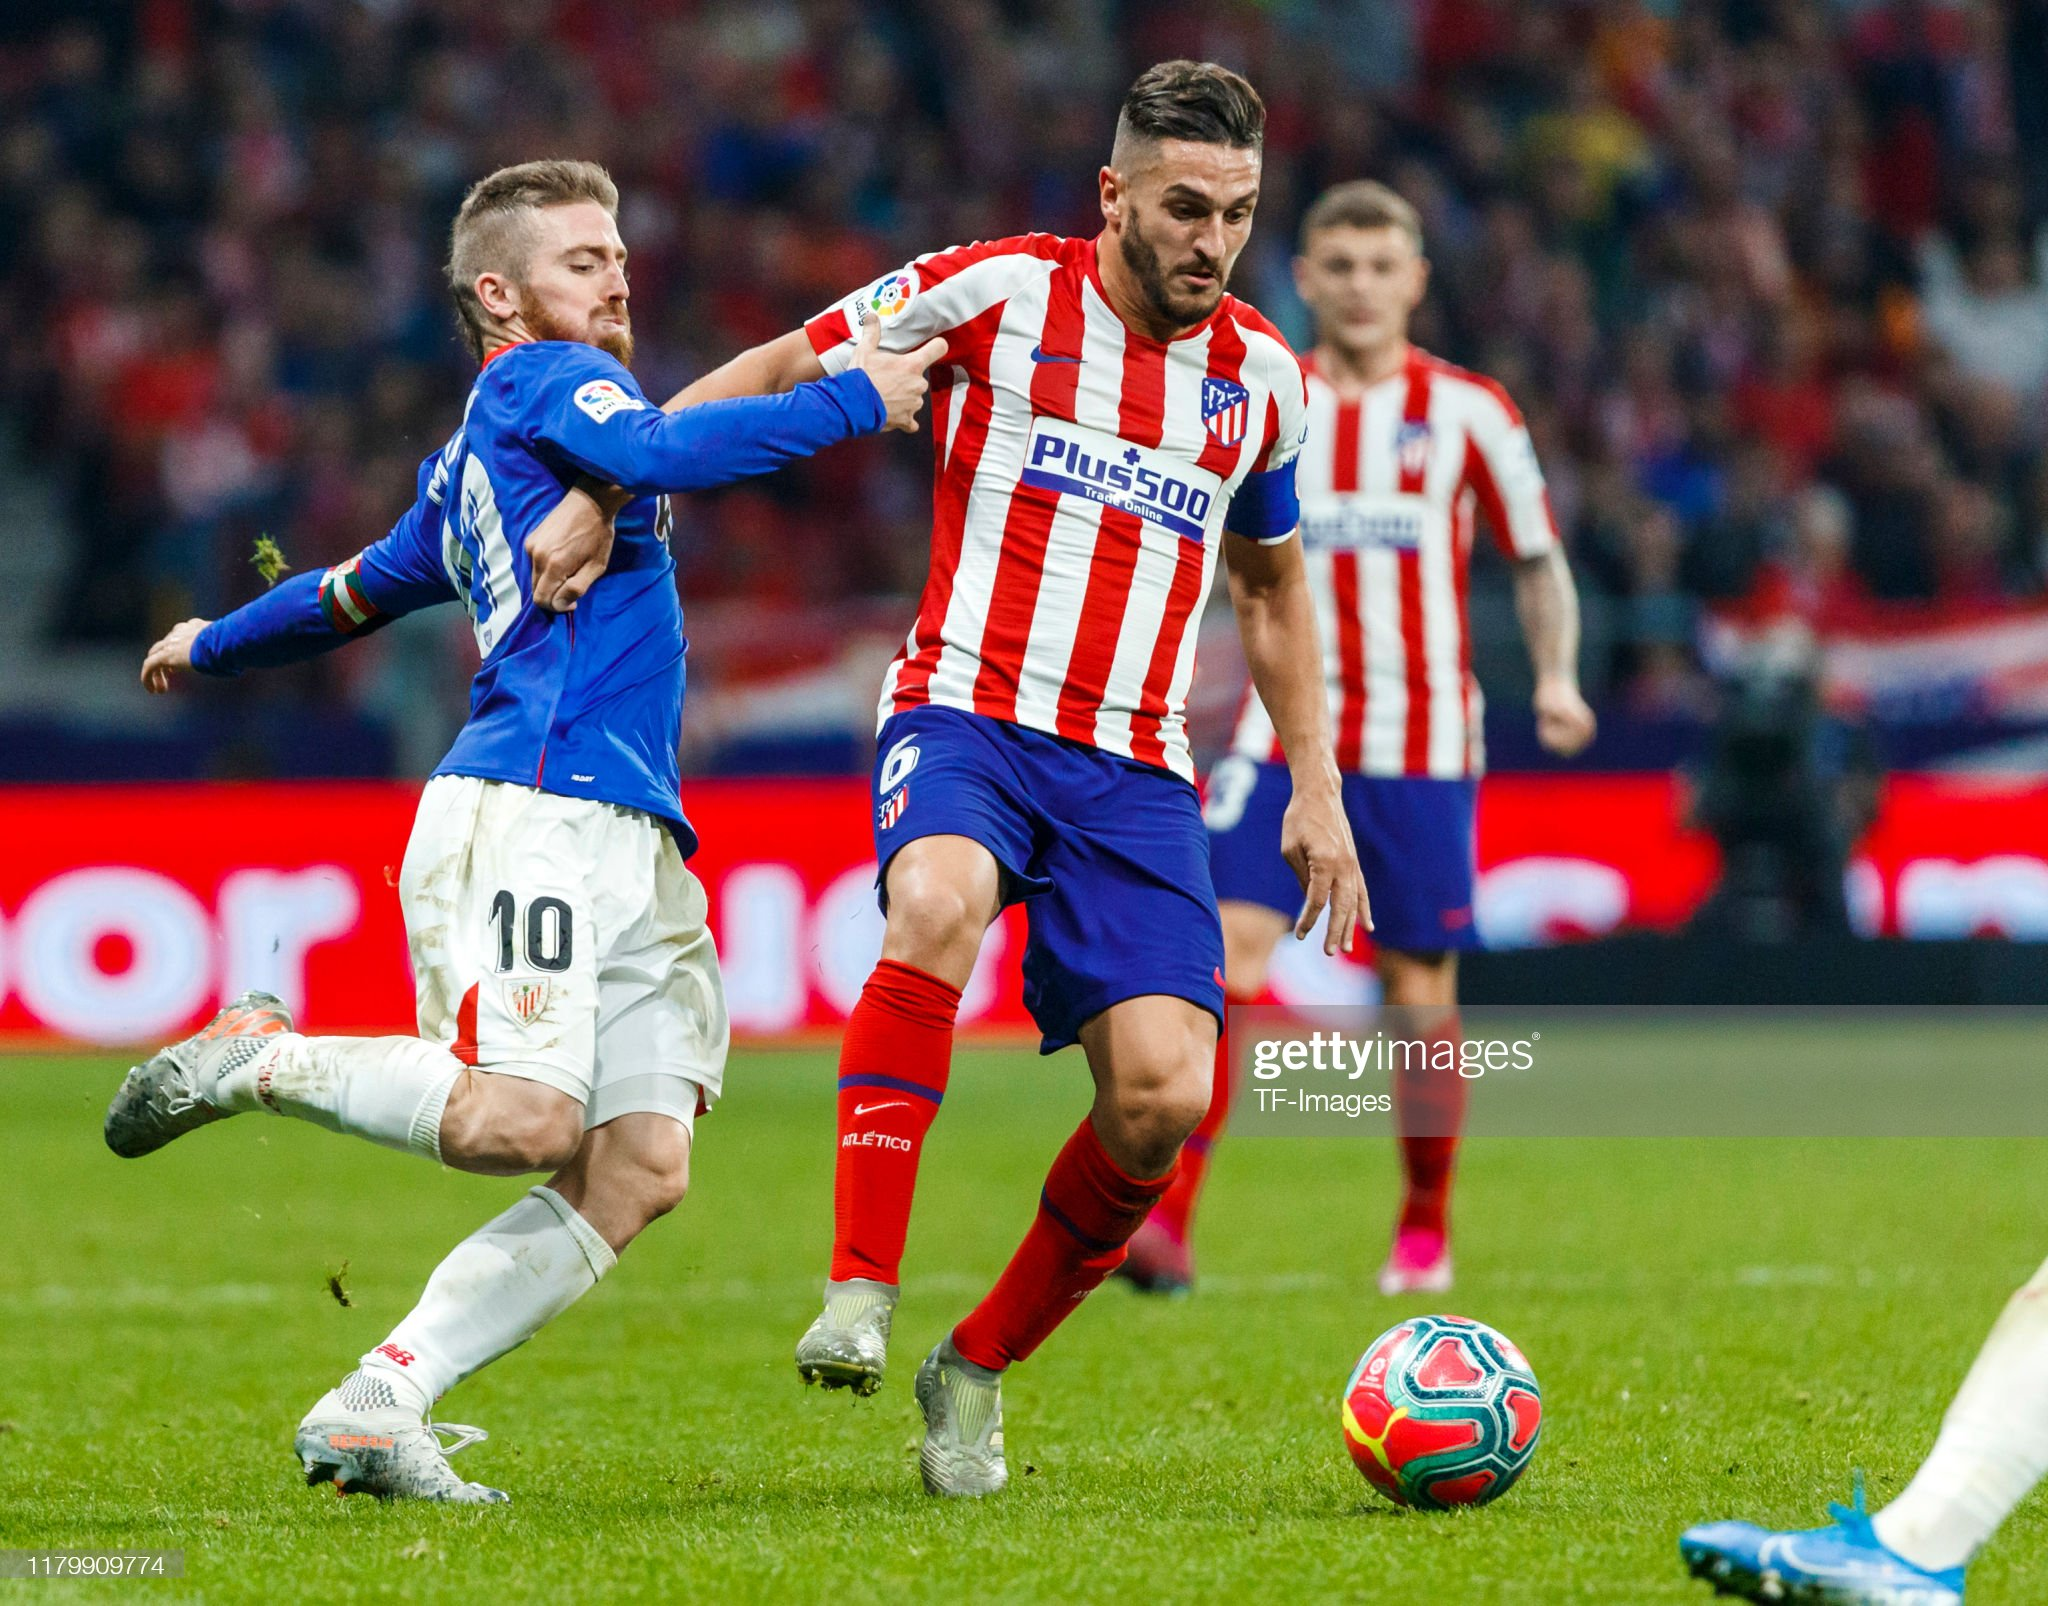 Athletic Bilbao vs Atletico Madrid Preview, prediction and odds